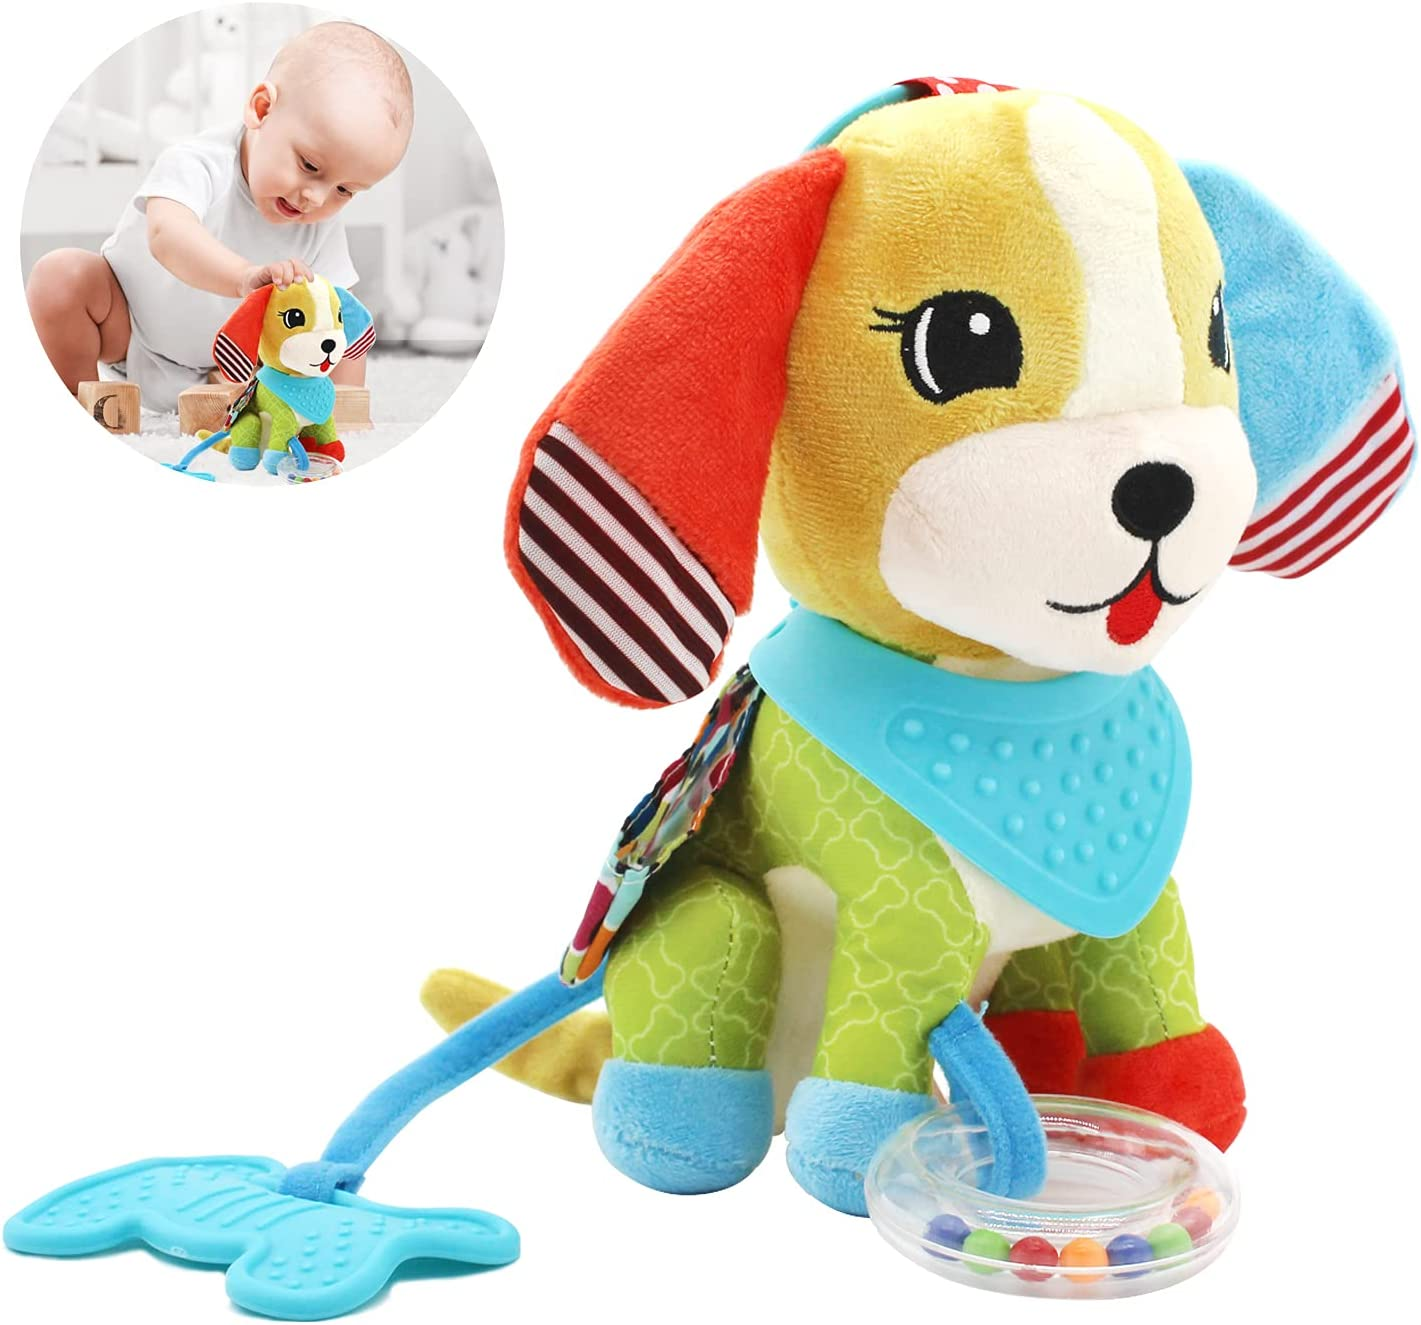 Bloobloomax Baby Car Seat Toys, Infant Soft Plush Rattle, Cute Animal Doll,Early Development Hanging Stroller Toys for Newborn Boys Girls Gifts (Dog)